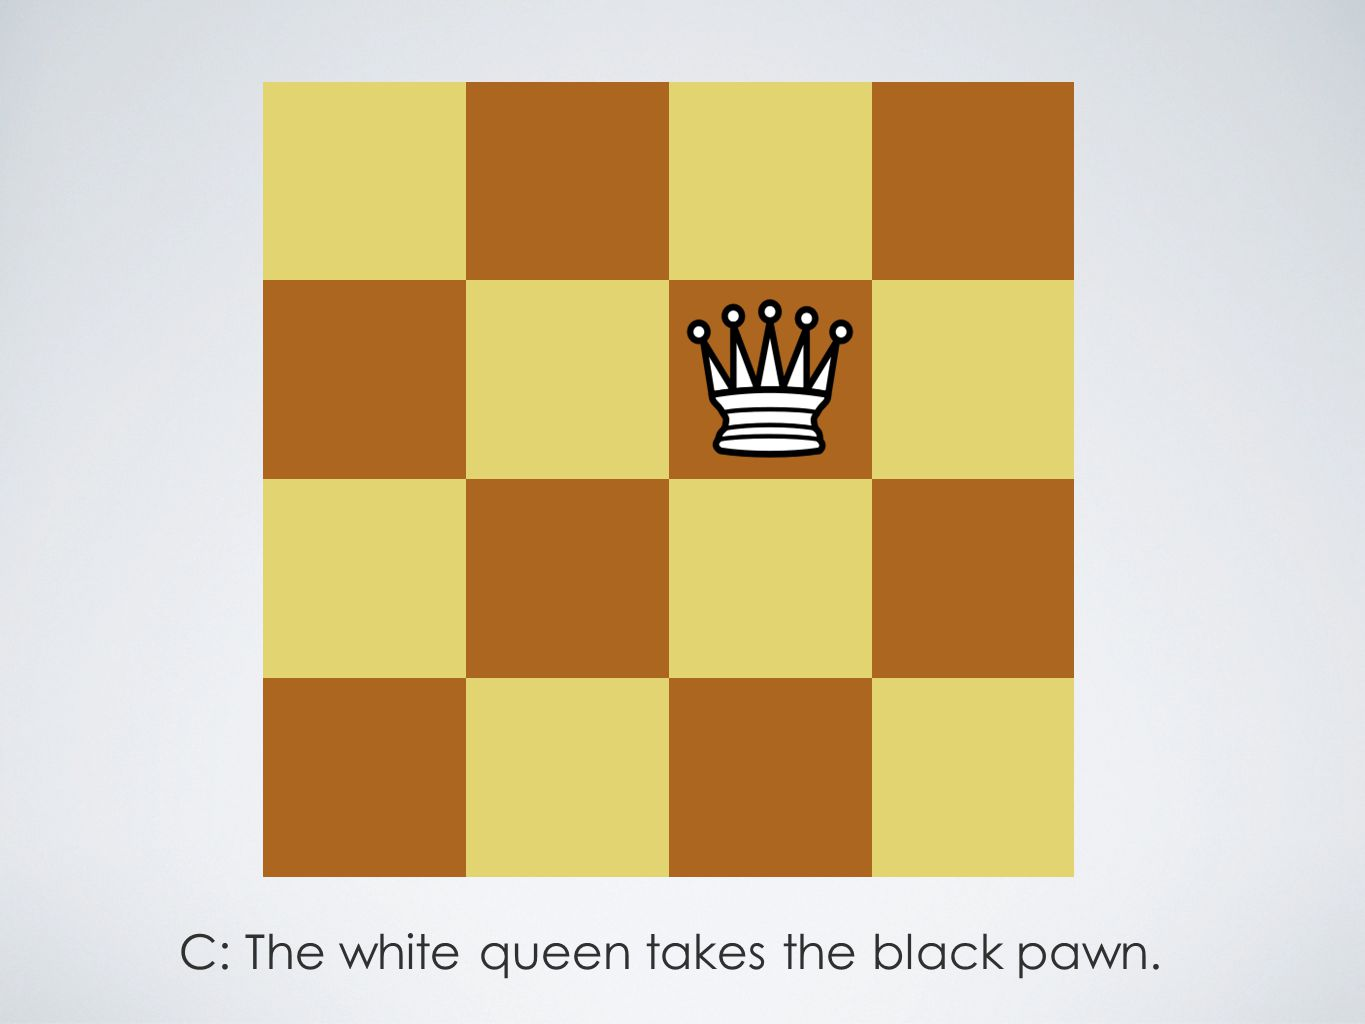 C: The white queen takes the black pawn.